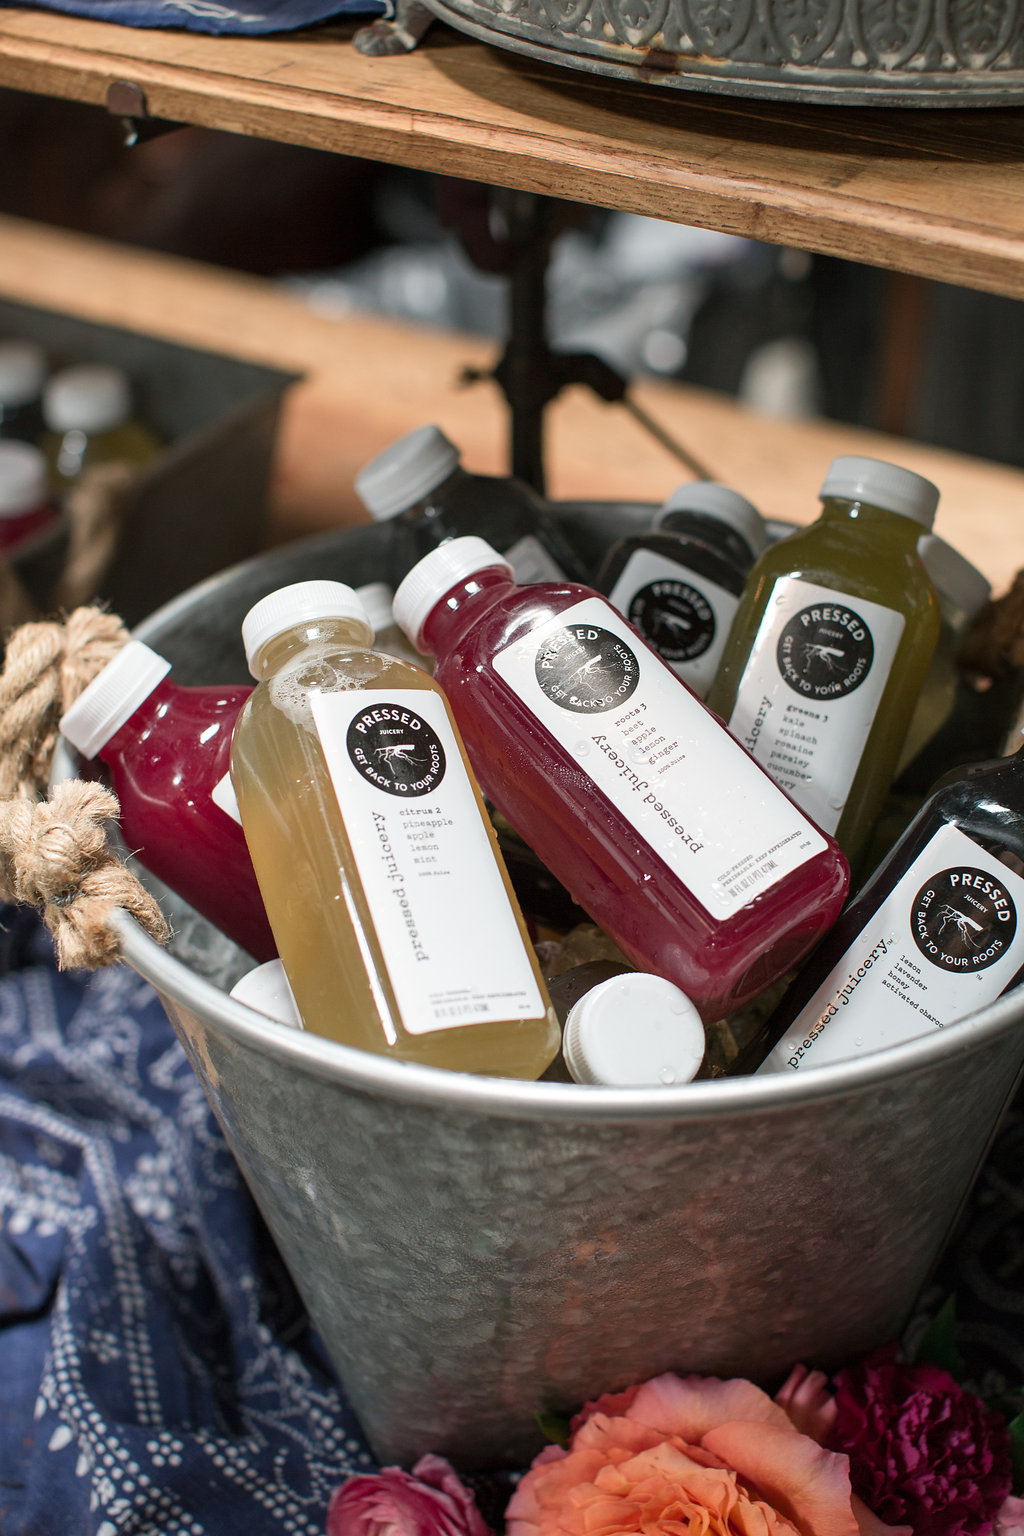 -019 Pressed Juice Display 2.jpg